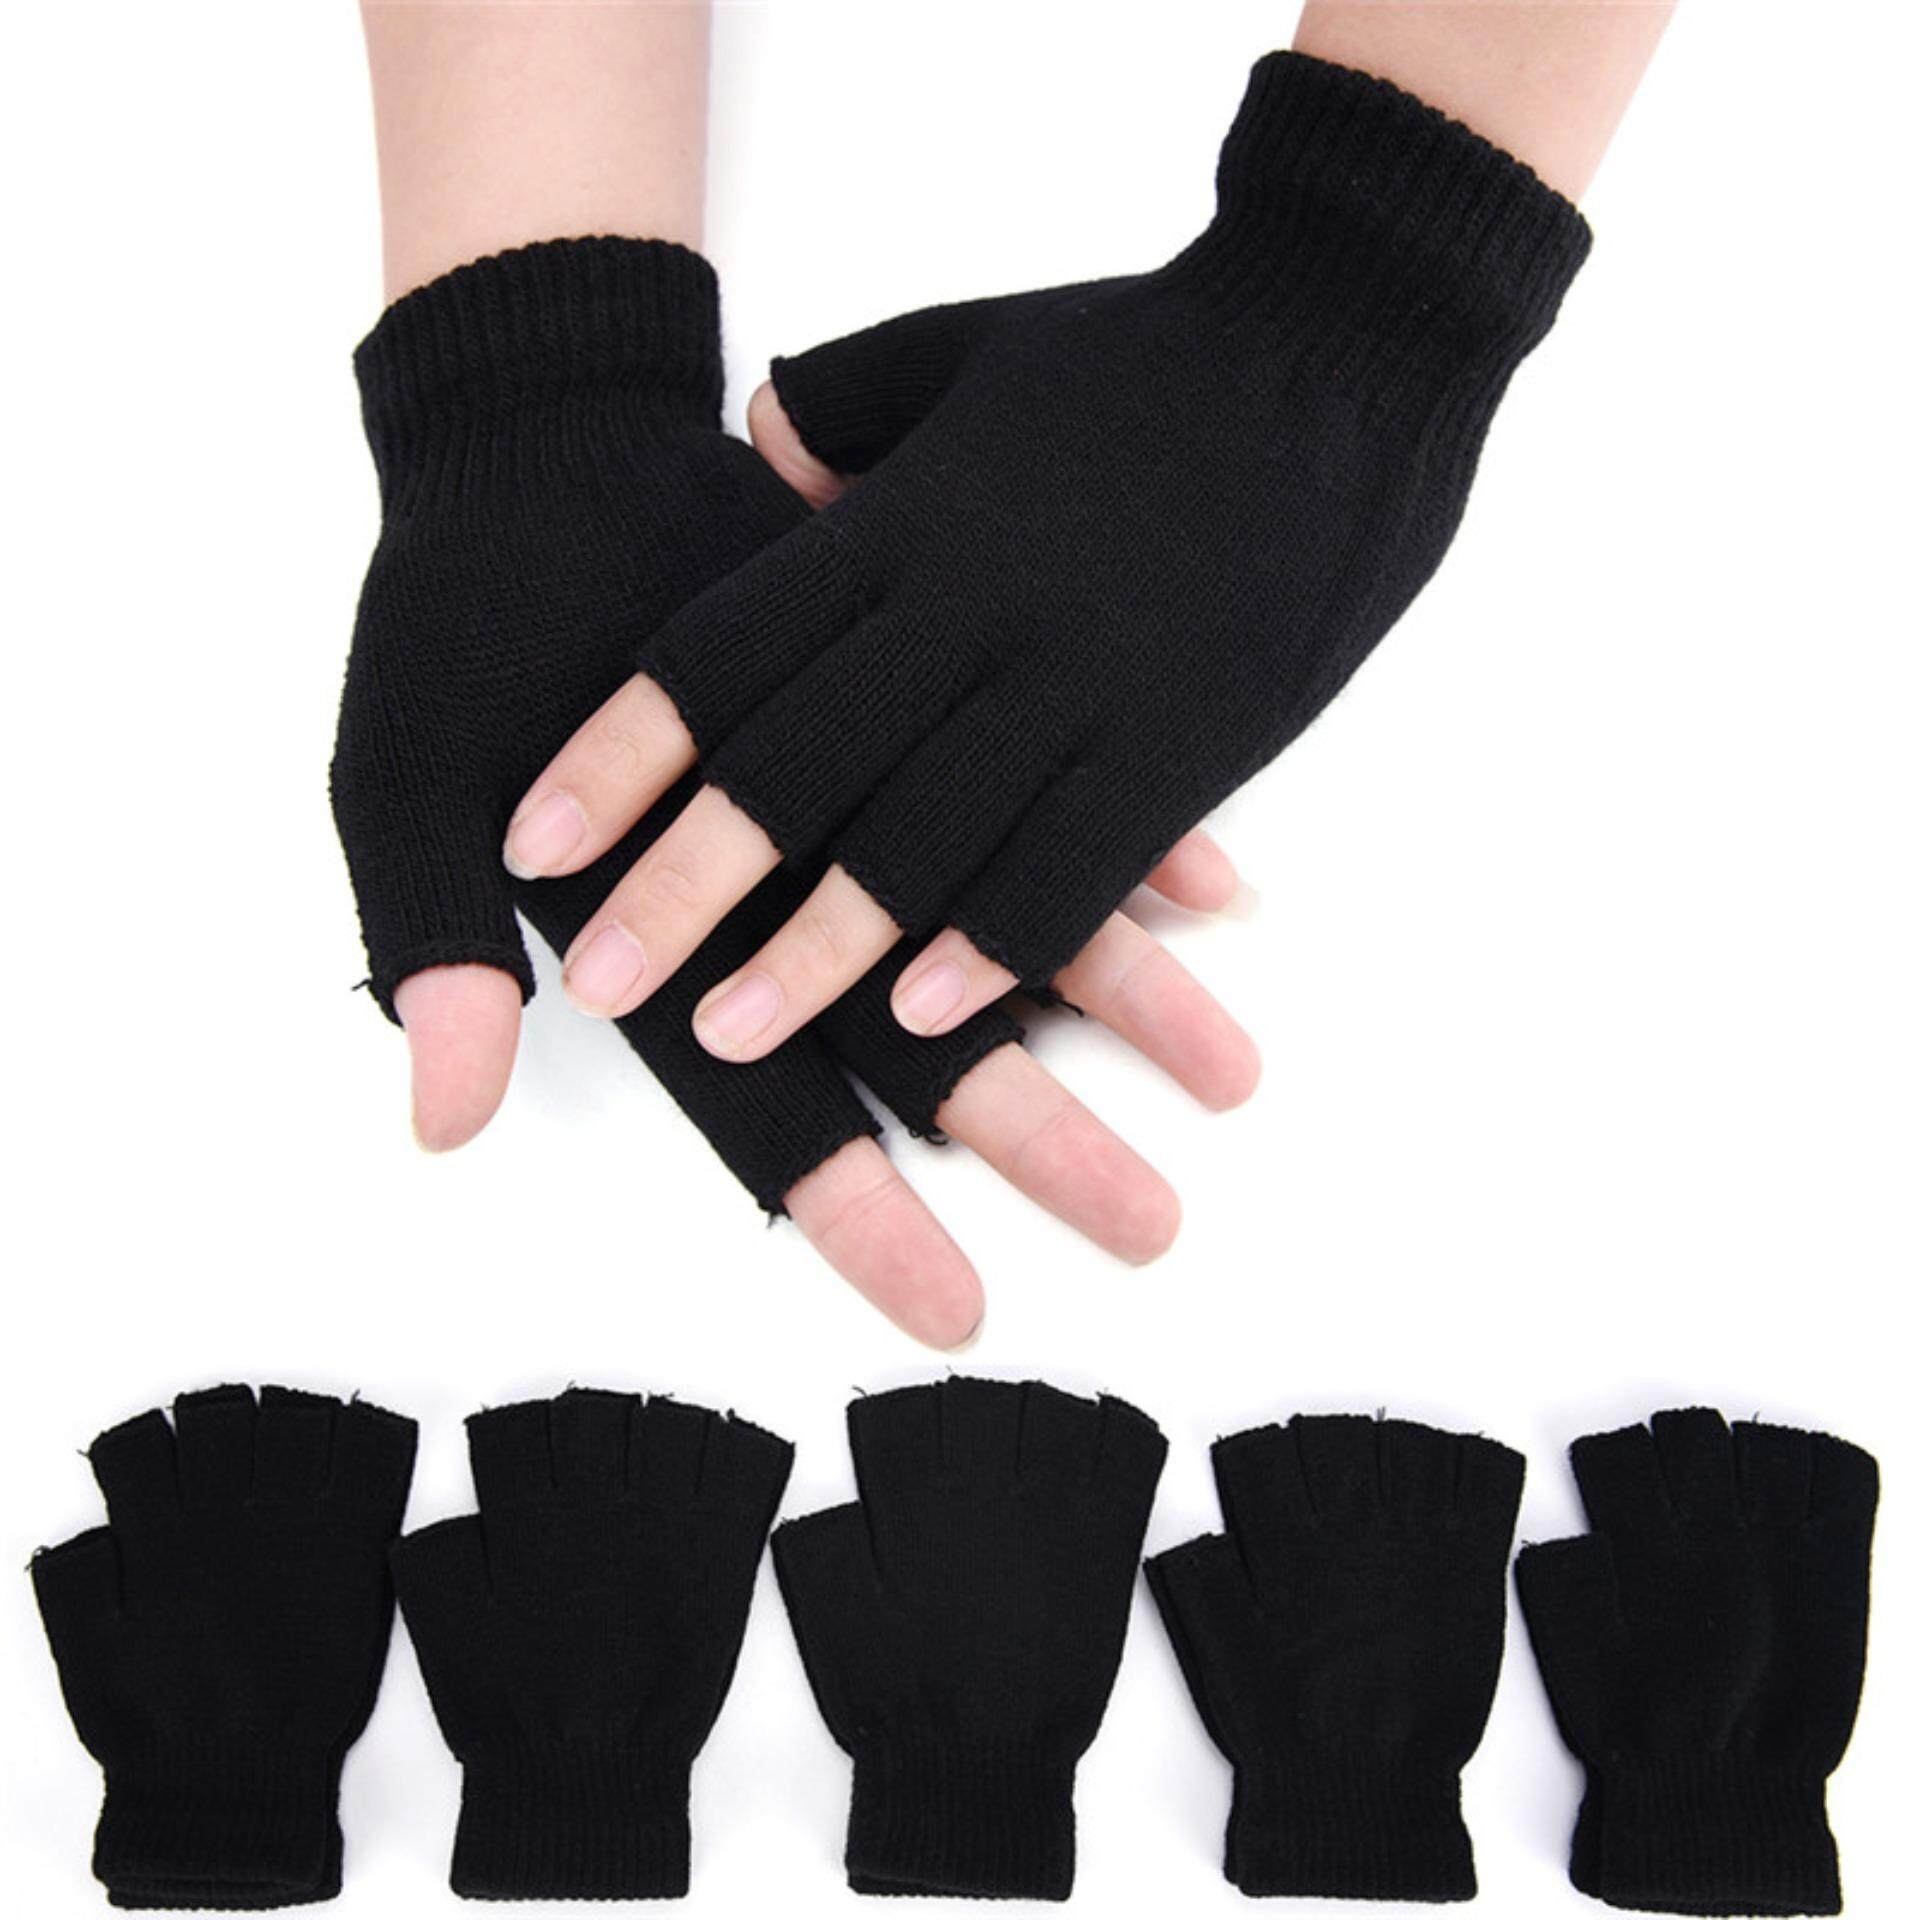 Men's Gloves Reliable Men Glove Fingerless Driving Black Sport Cotton Gloves Hot Sale New Arrivals